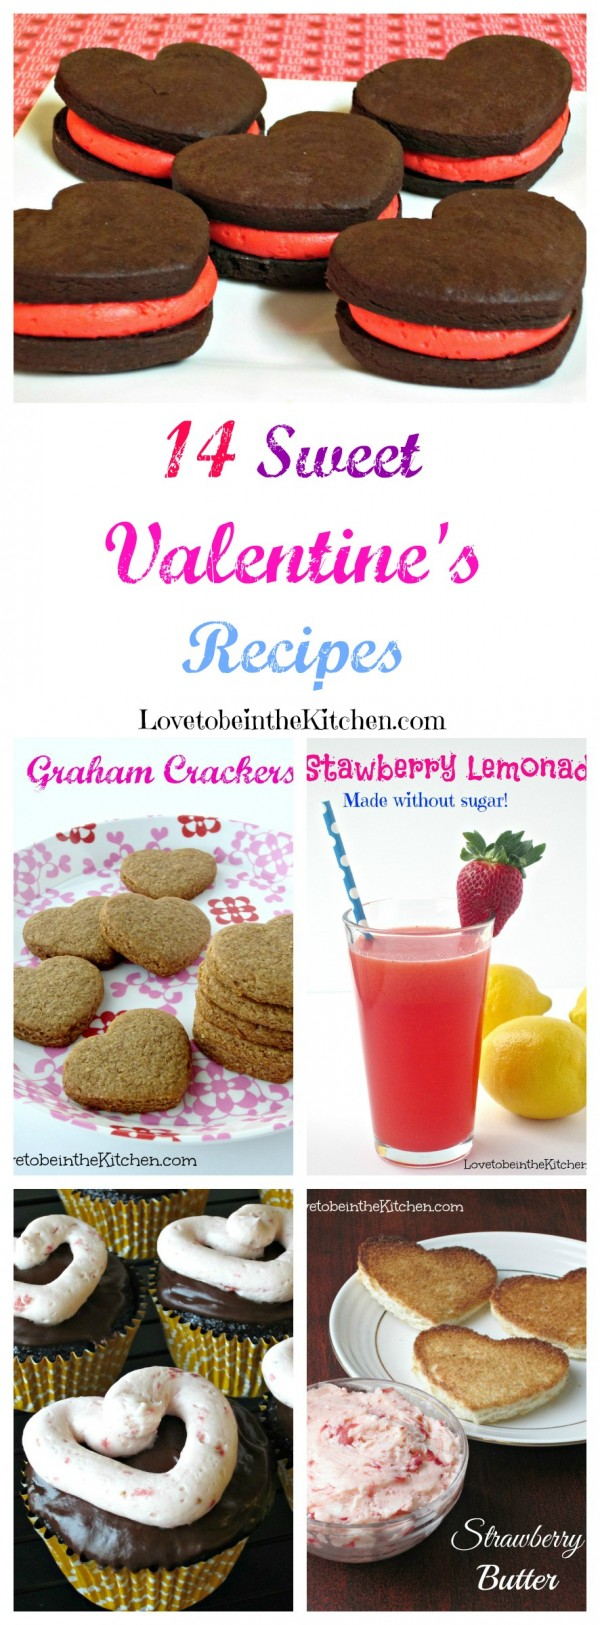 14 Sweet Valentine's Recipes